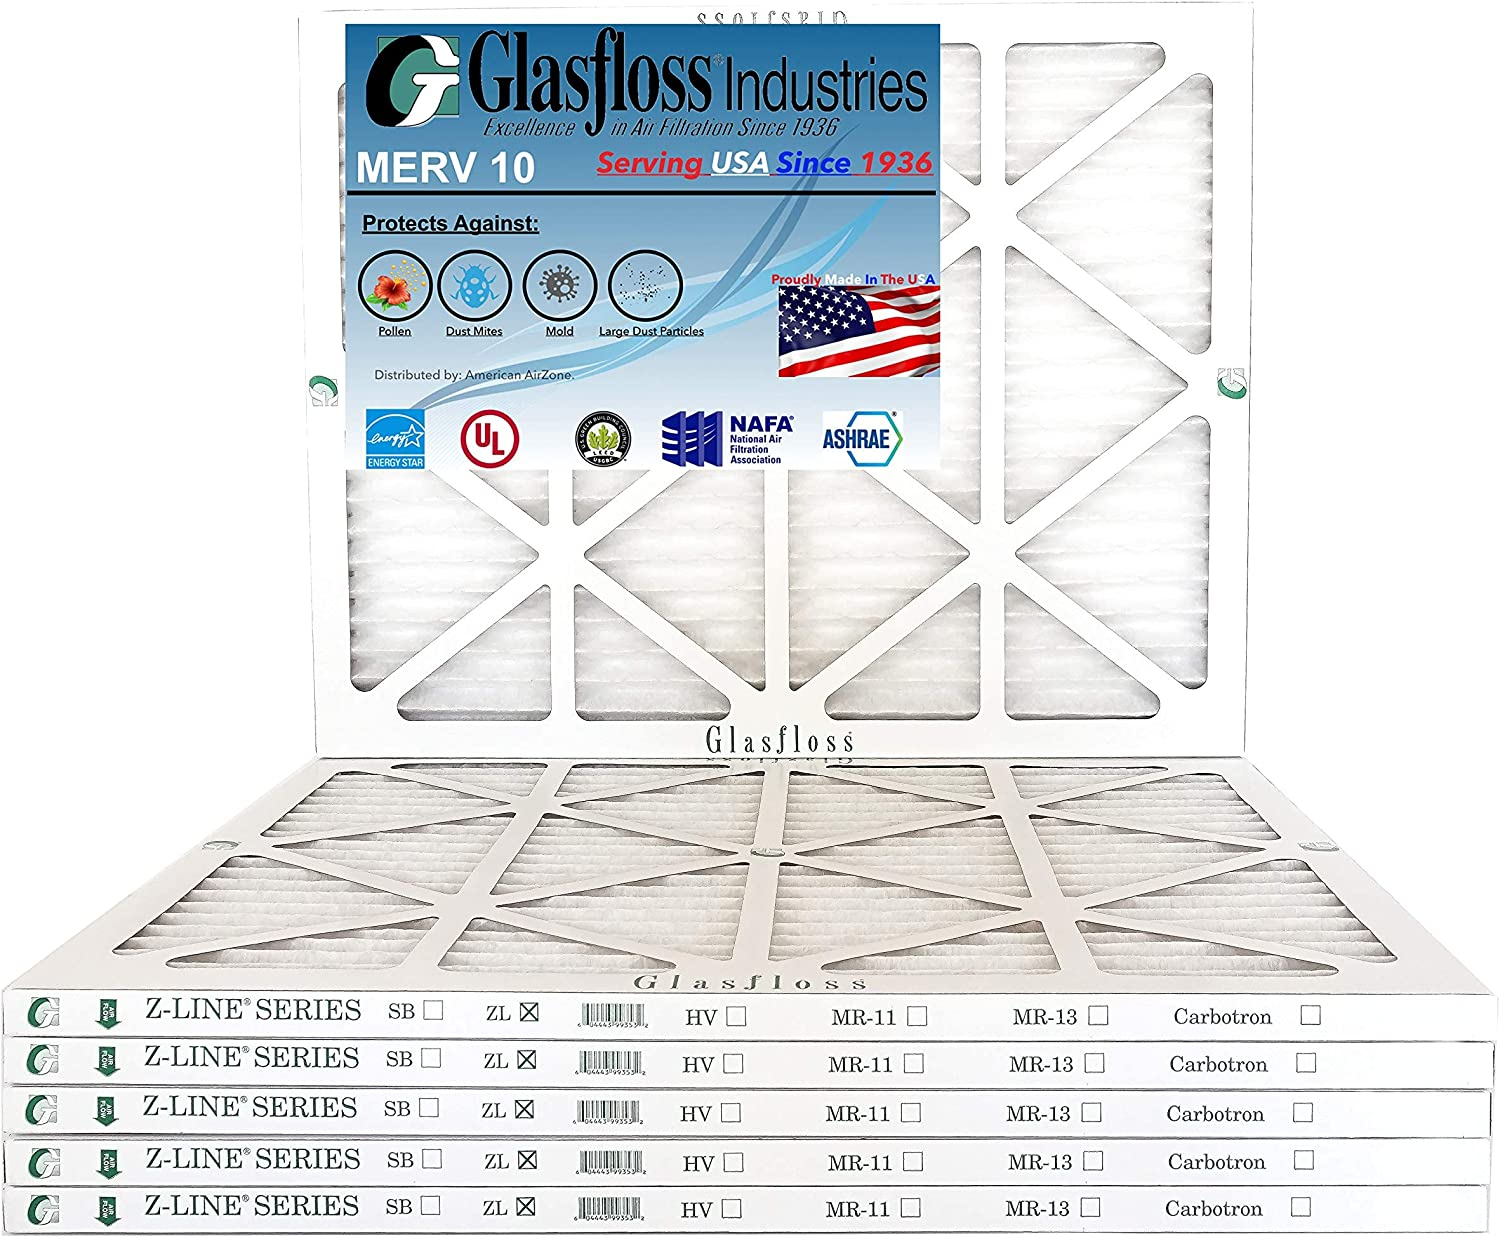 Glasfloss 20x25x1 - 1 Inch MERV 10 Atlanta Mall of Pleated Pack Air Manufacturer direct delivery 6 Fil